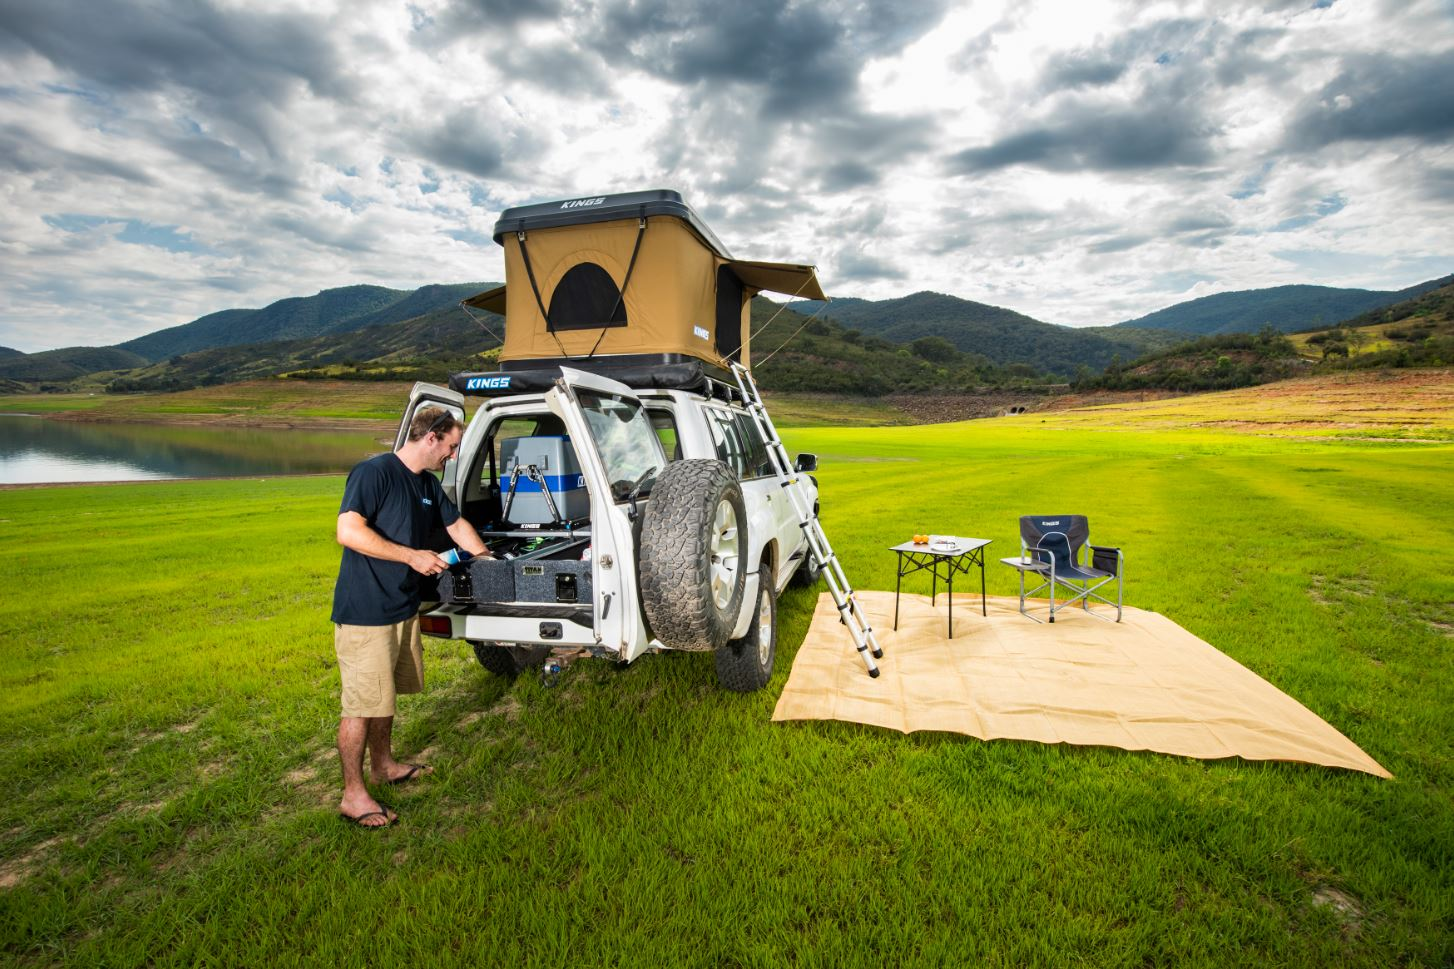 A Roof Top Tents have changed the way Aussies camp! - image 190214-HighCountry-Blowering_DJ-632-of-792-AU on https://www.4wdsupacentre.com.au/news